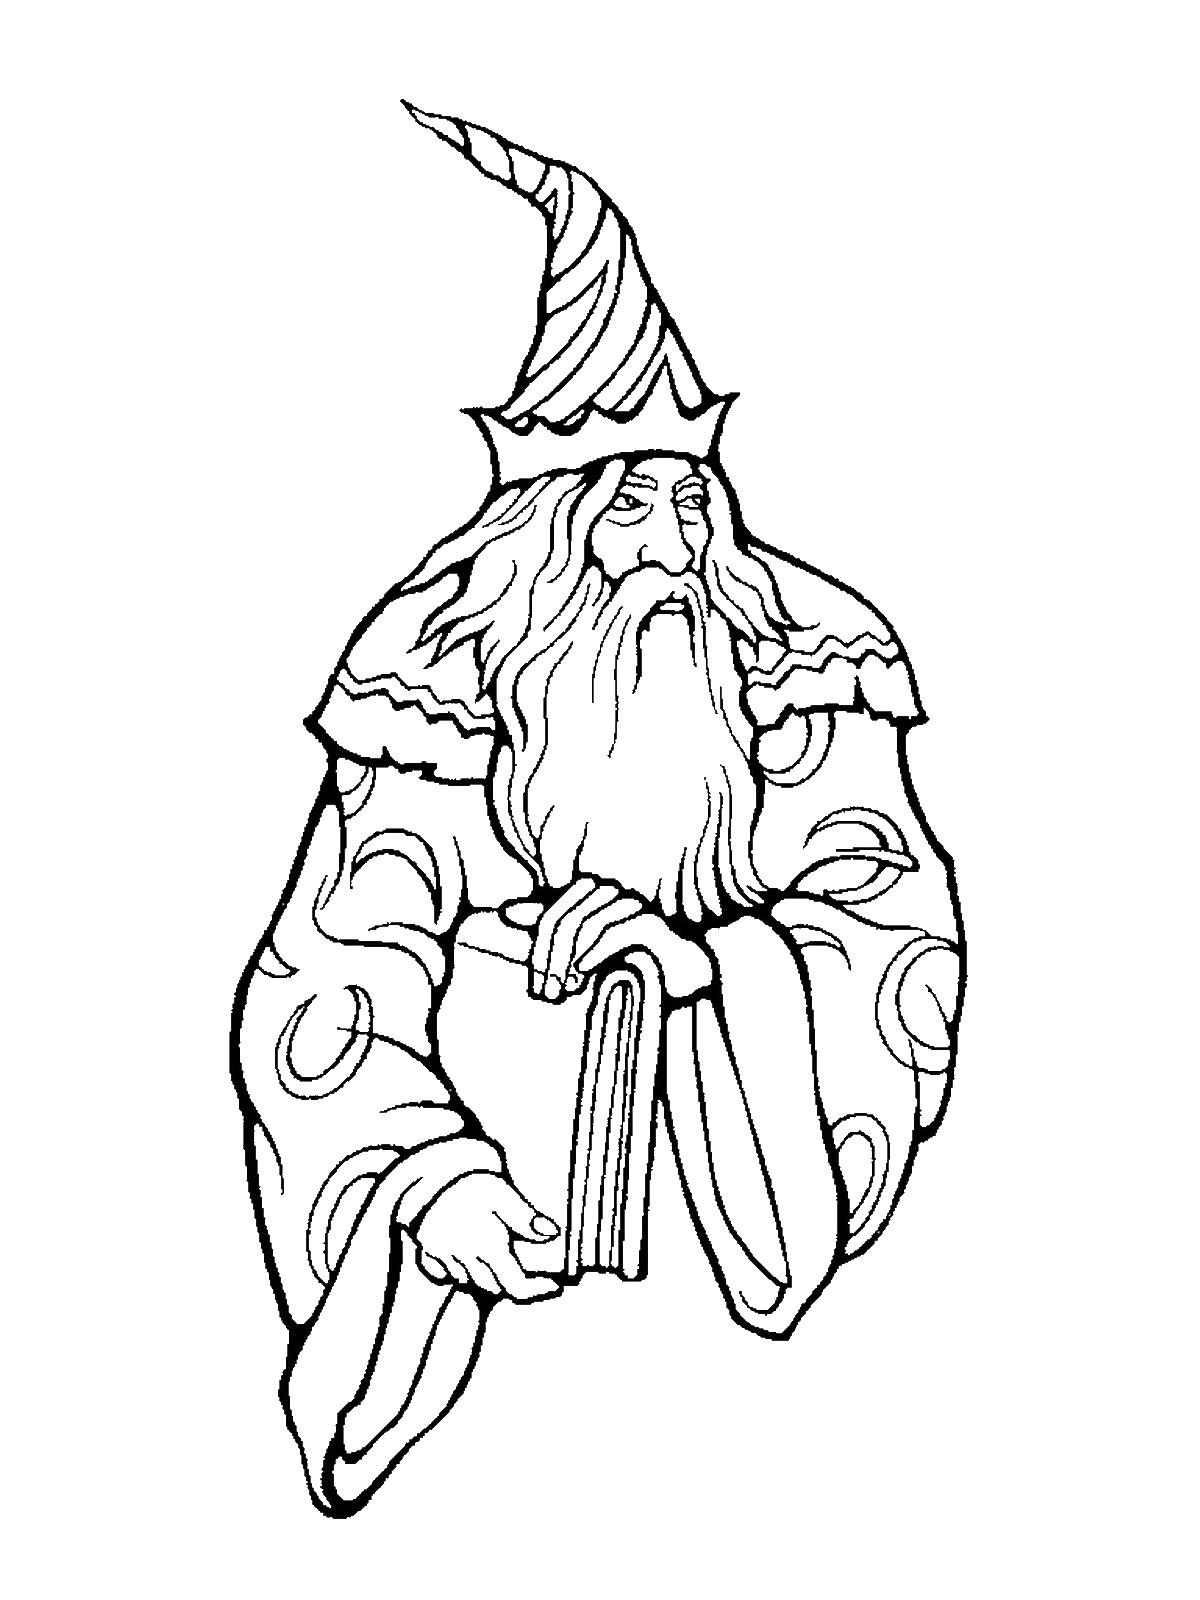 wizard of oz pictures to print wizard of oz coloring pages free for kids pictures of to oz print wizard